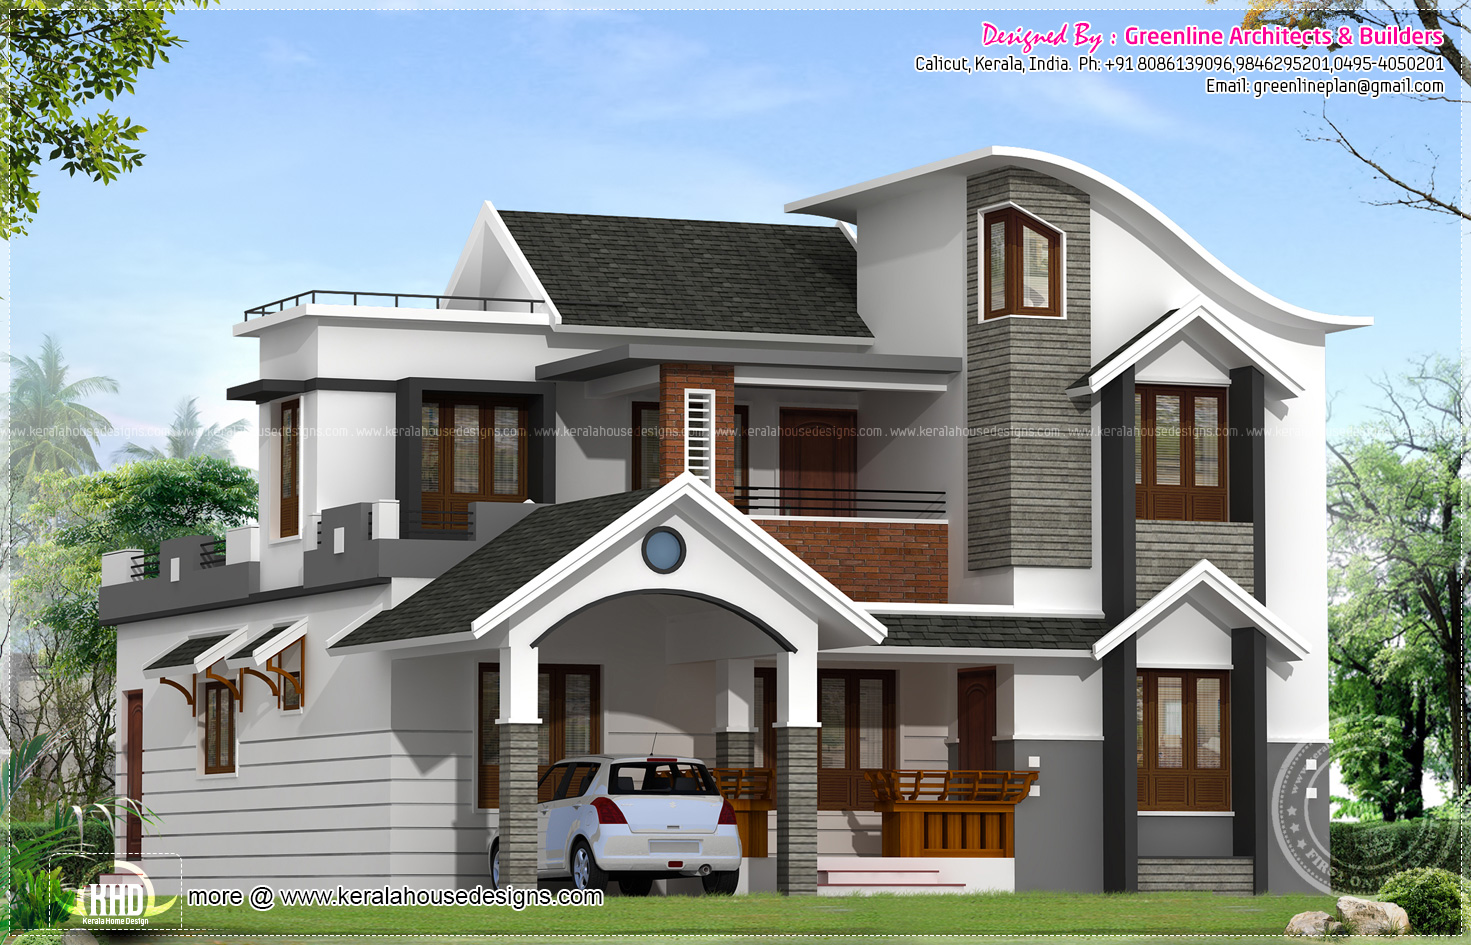 May 2013 kerala home design and floor plans for Modern indian house plans